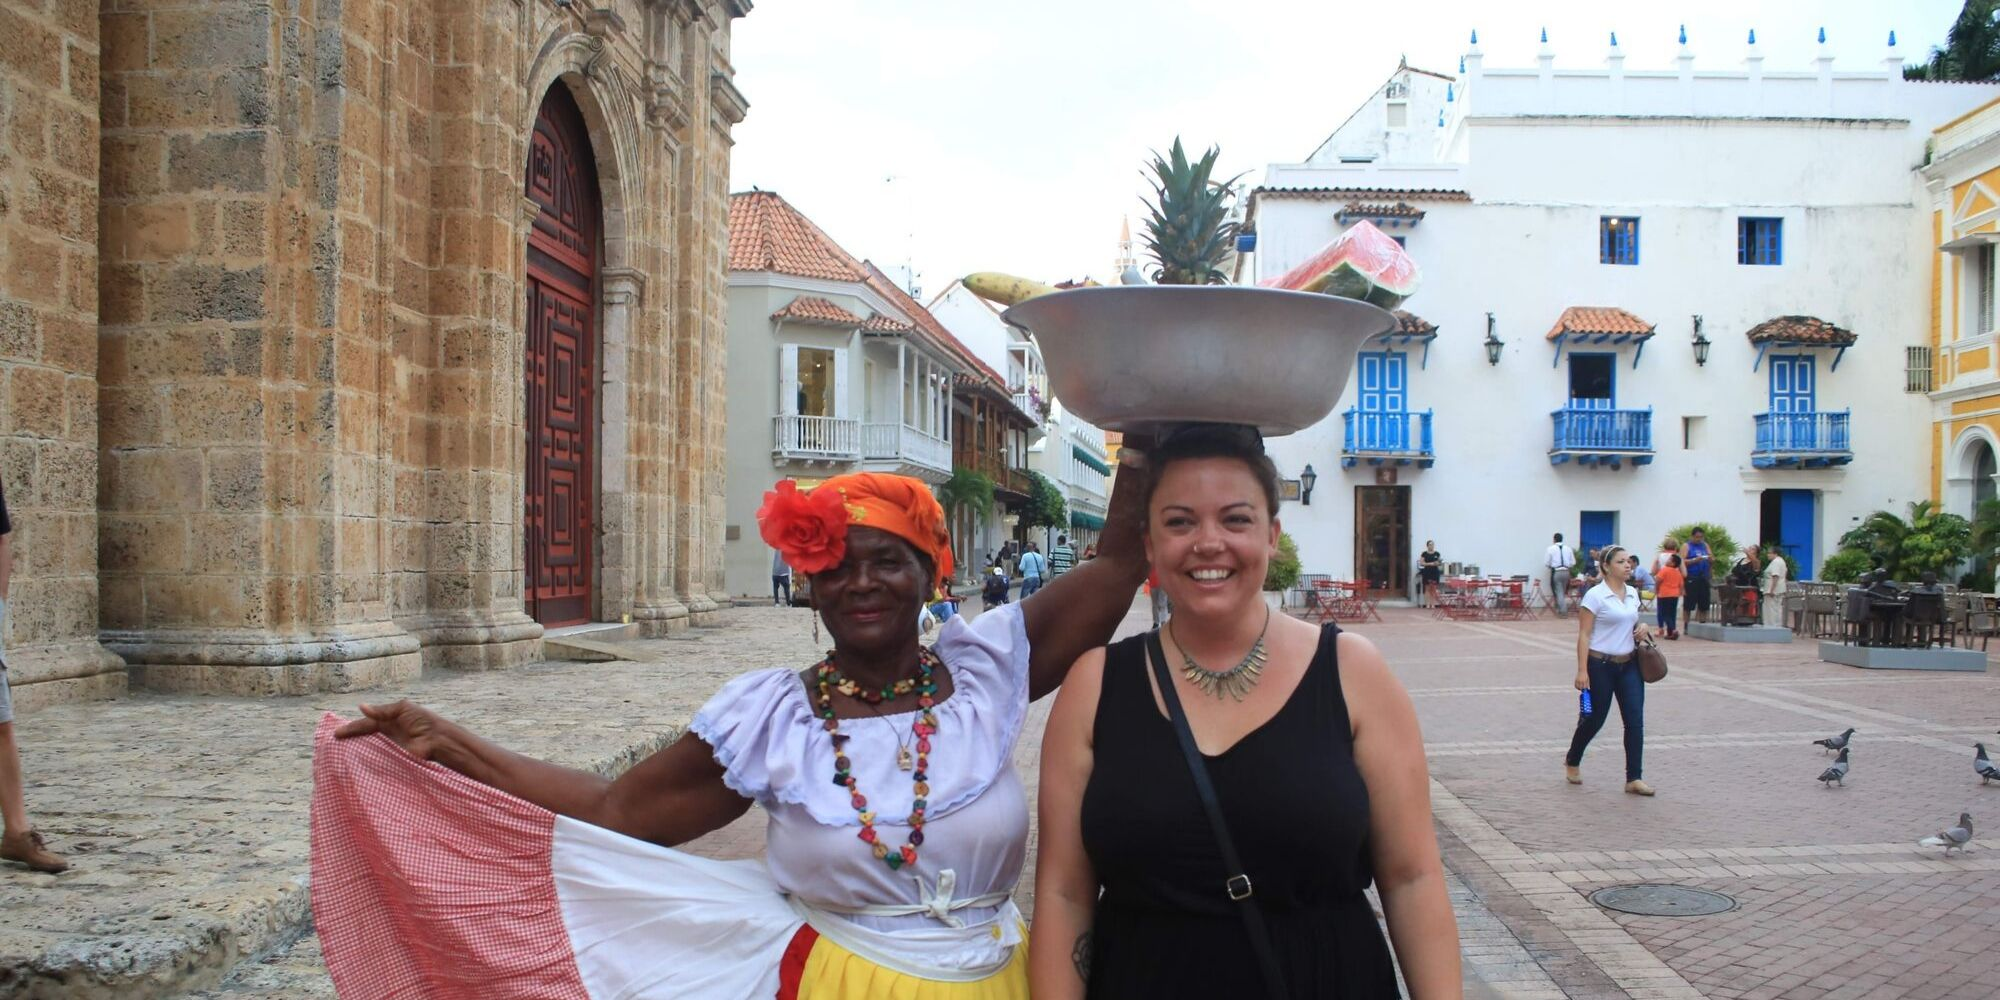 balancing bowl on head at colombia street market